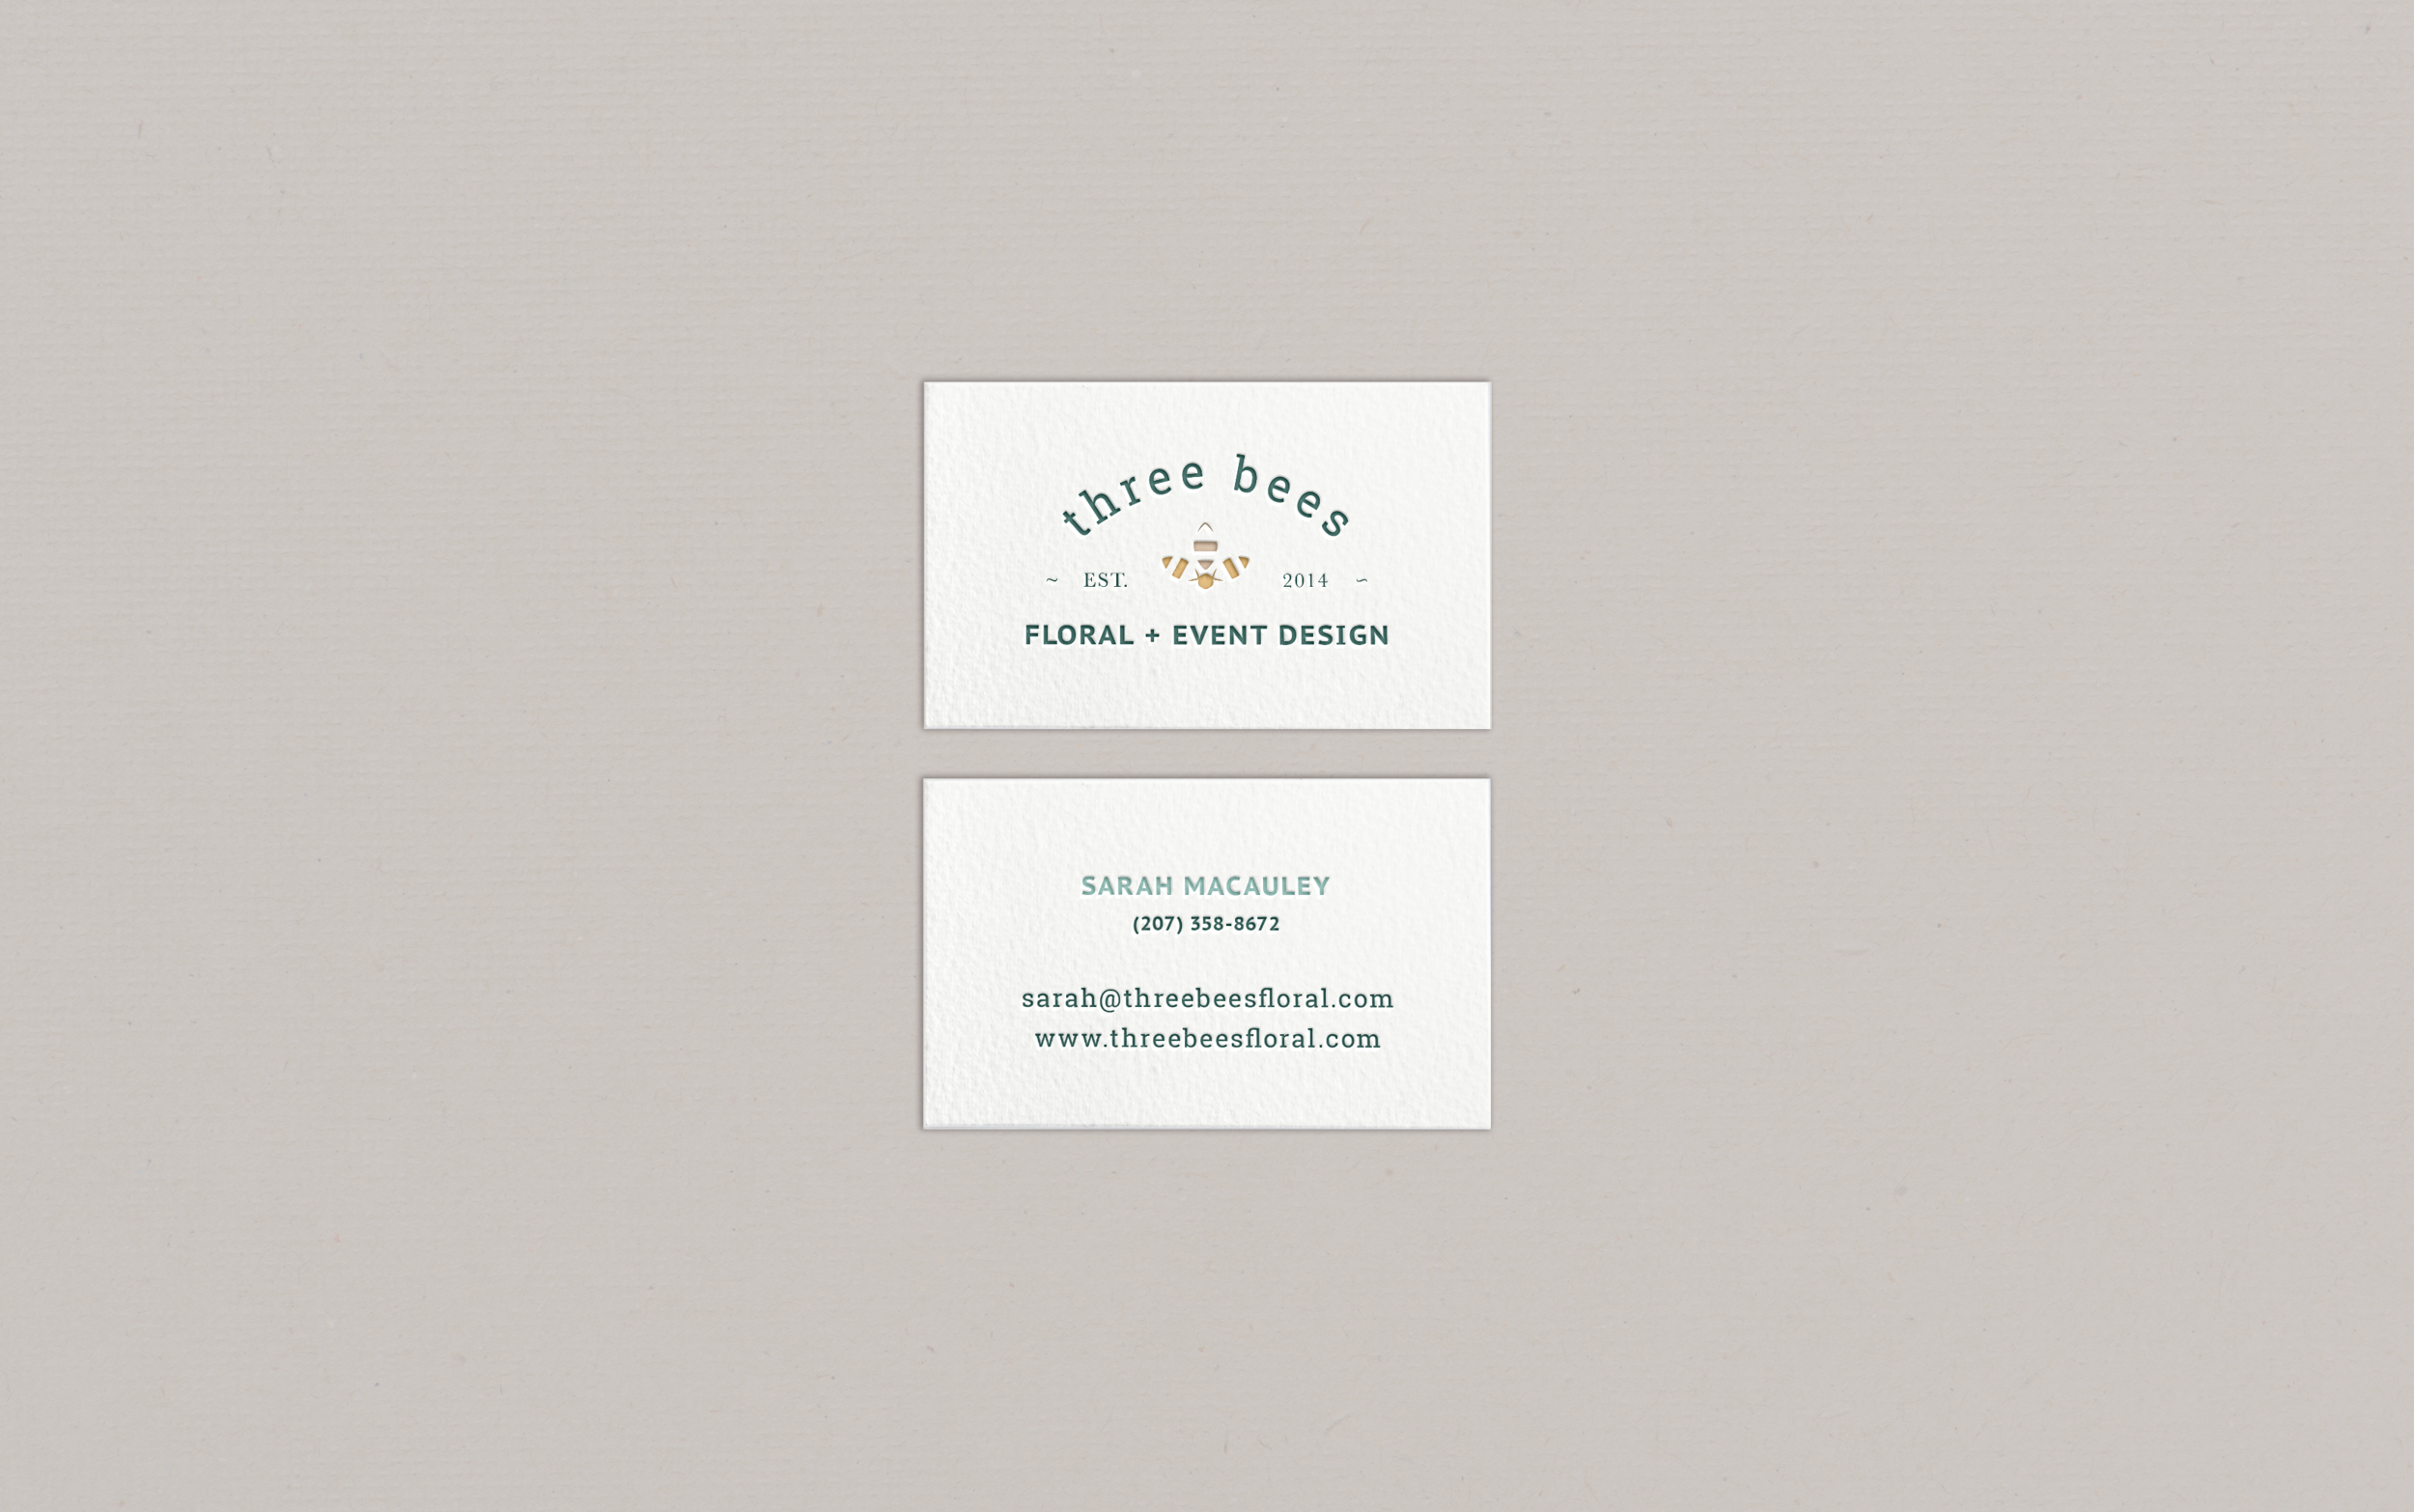 Three Bees Business Card Revised 4.png